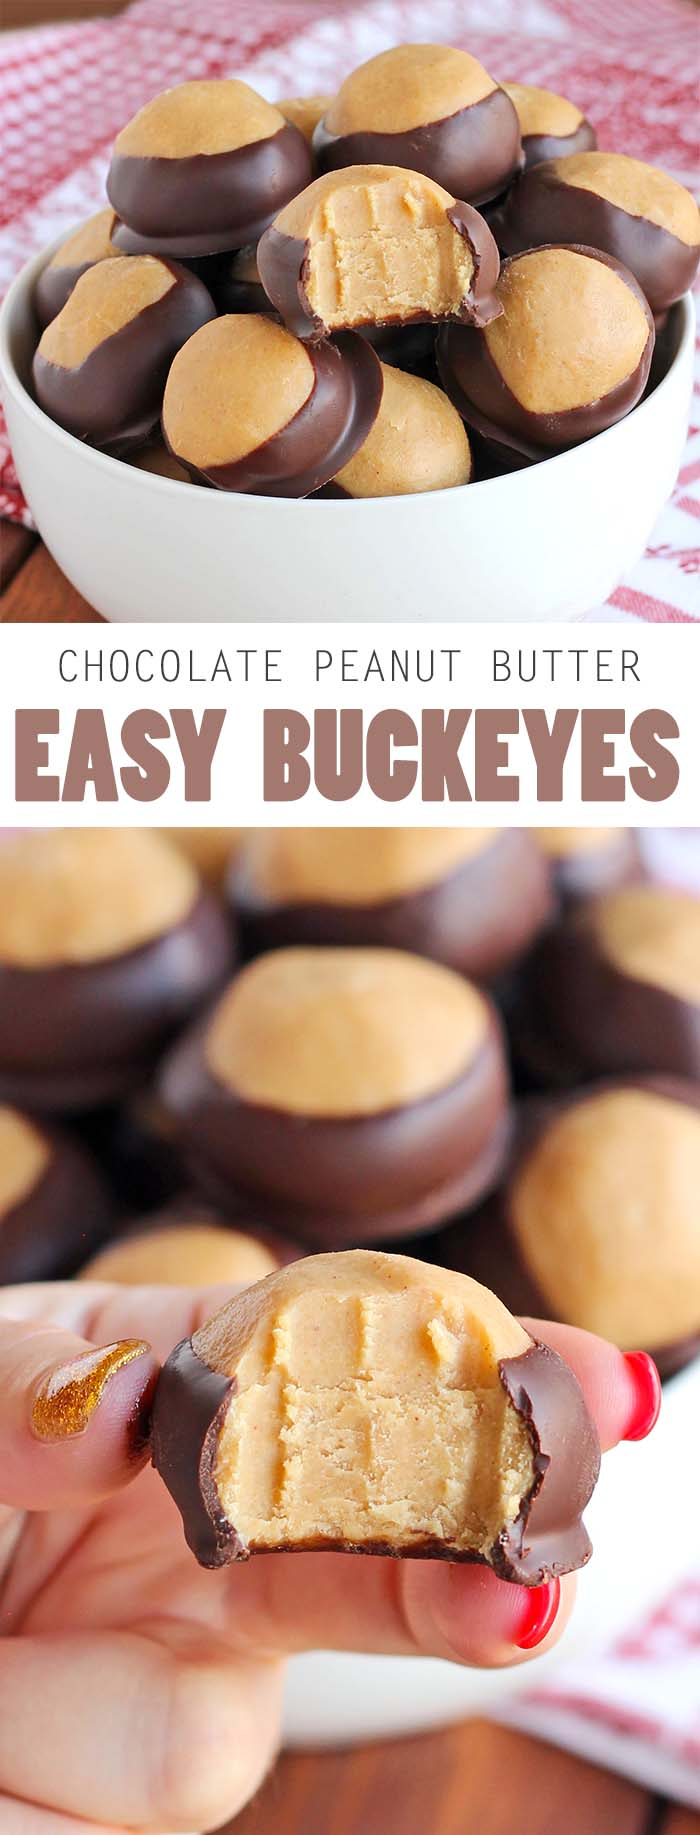 Seriously, you need to make these easy buckeyes. They're so good, so easy....so delish!